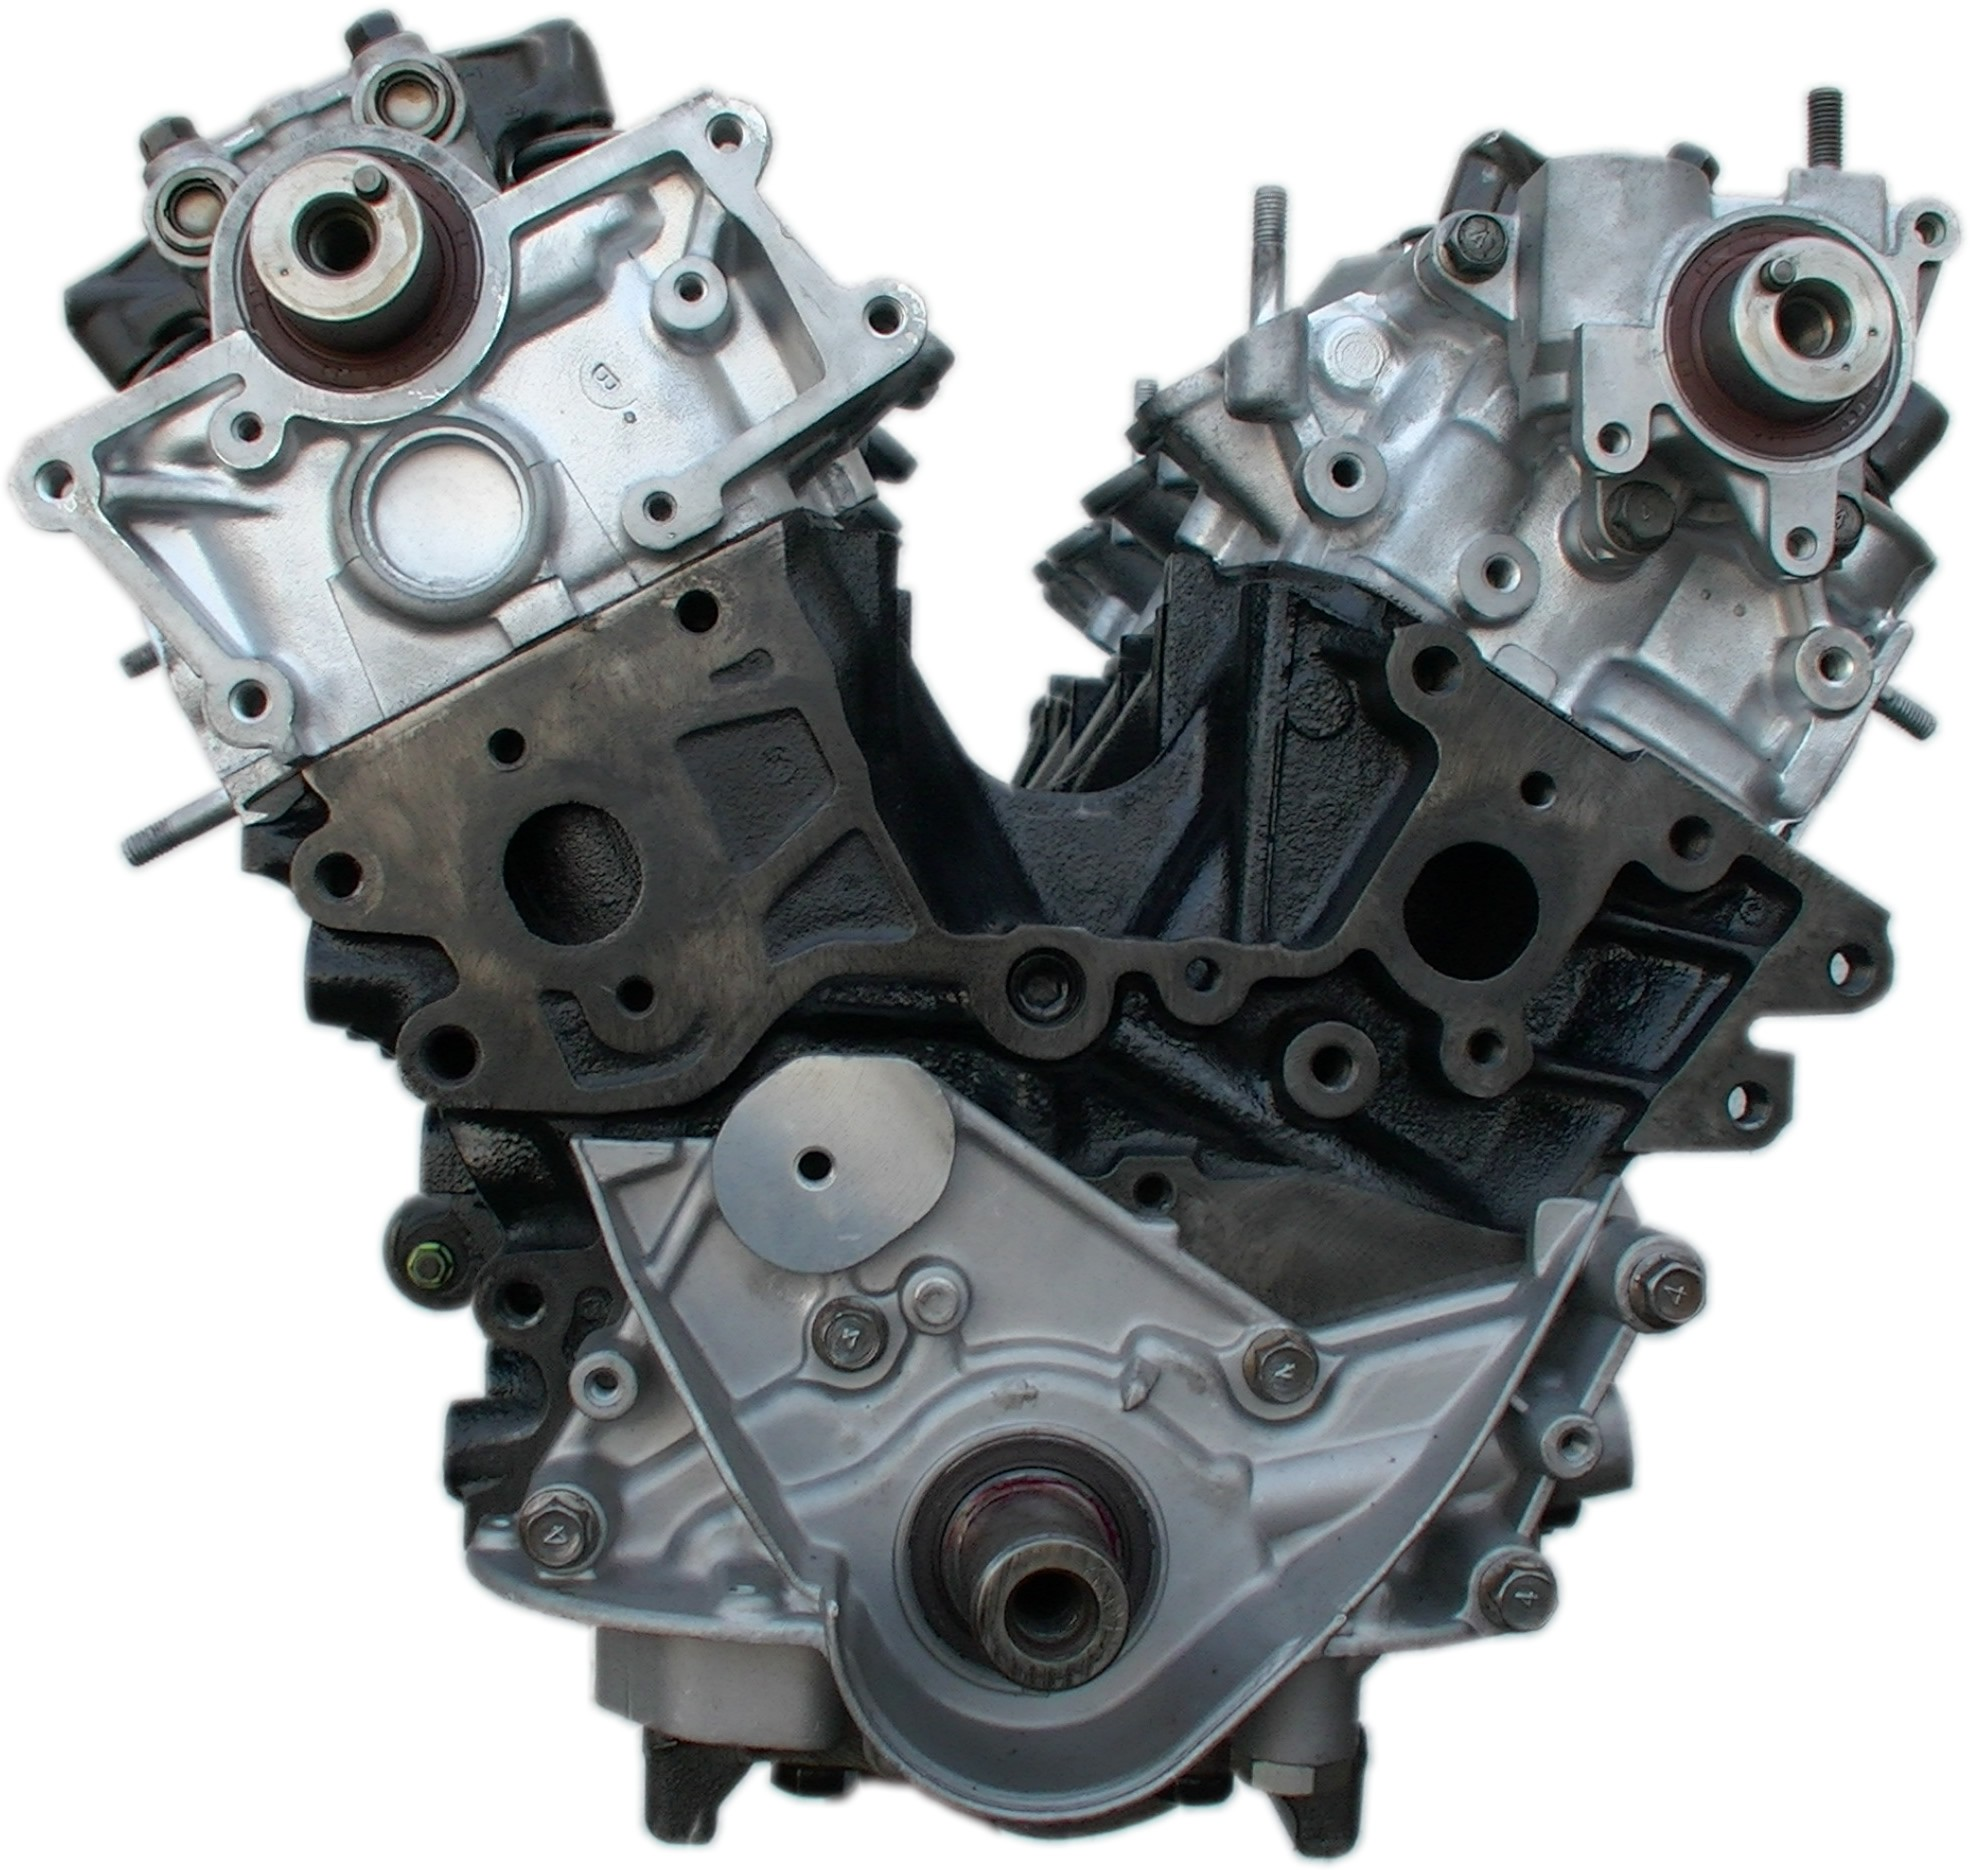 Chrysler 3 0l V6 Engine Diagram Guide And Troubleshooting Of Toyota 0 Liter Wiring Gm 30l Duratec